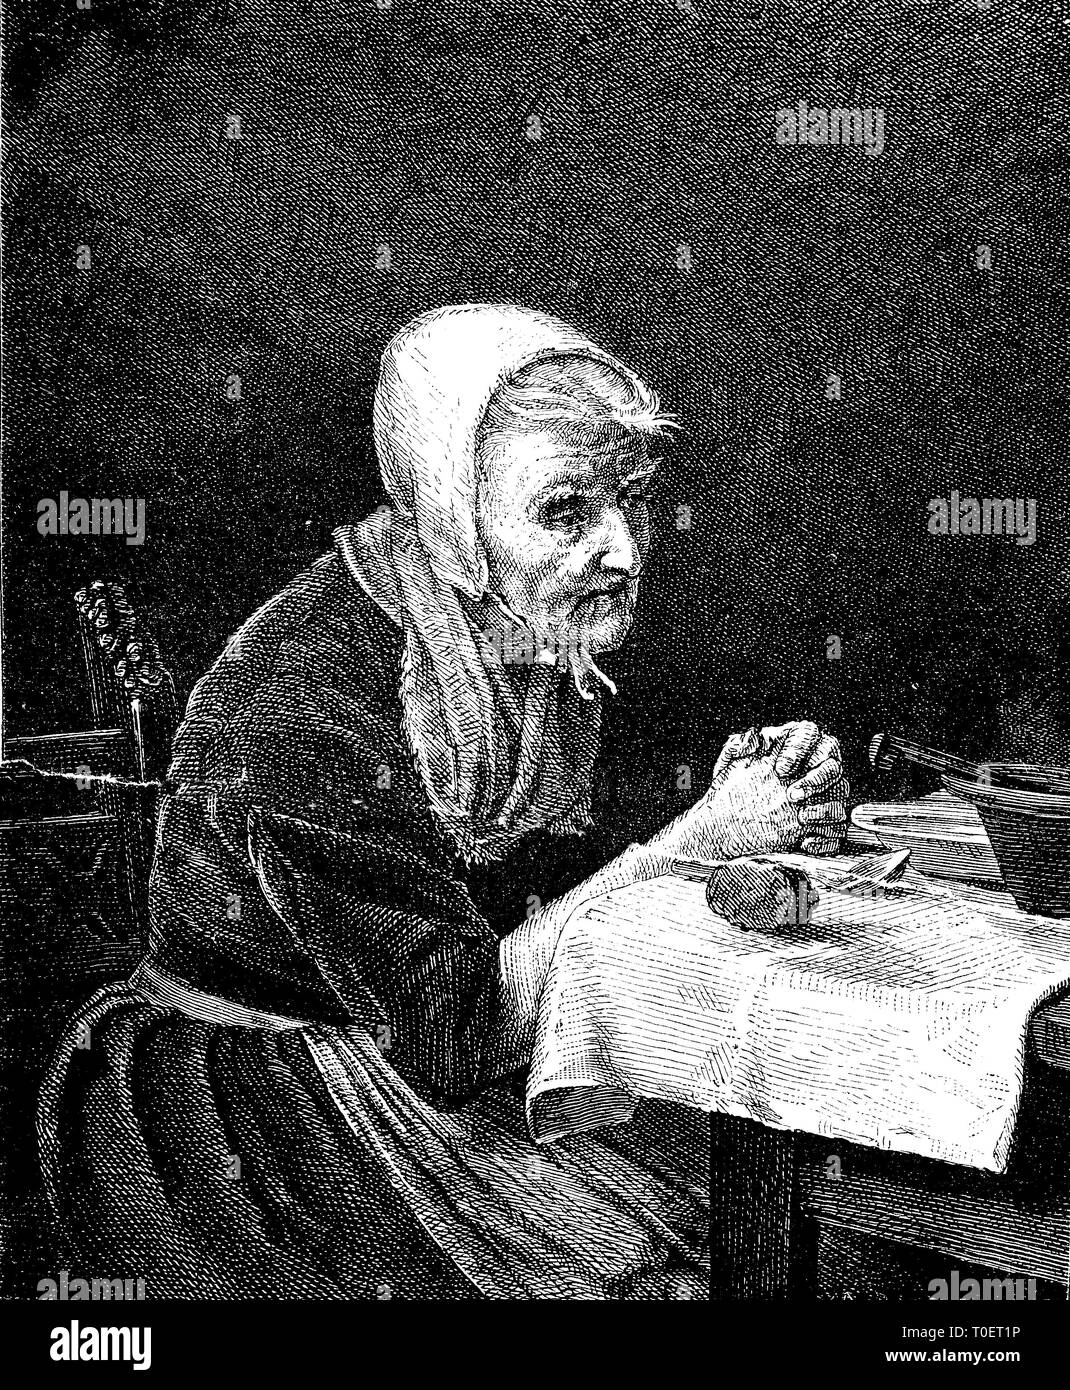 the frugal, old woman with a spare time at the table prayer  /   Genügsame, alte Frau mit einem kargen Mahl beim Tischgebet Stock Photo